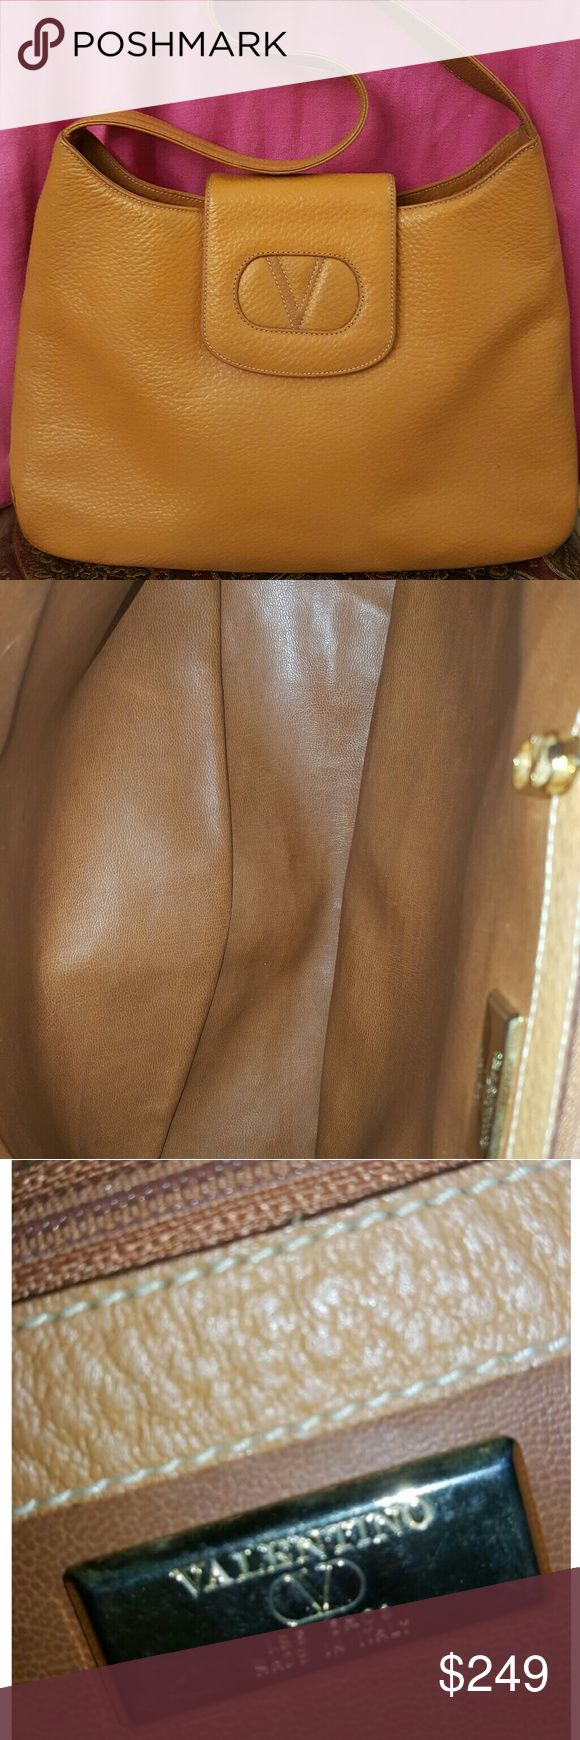 Authentic Valentino shoulder bag. It's authentic  brown leather bag, made in Italy, zipper works properly, minor stain outside and bottom, but unnoticeable.minor rub on shoulder strap. You can use as casual or formal. Valentino Bags Shoulder Bags